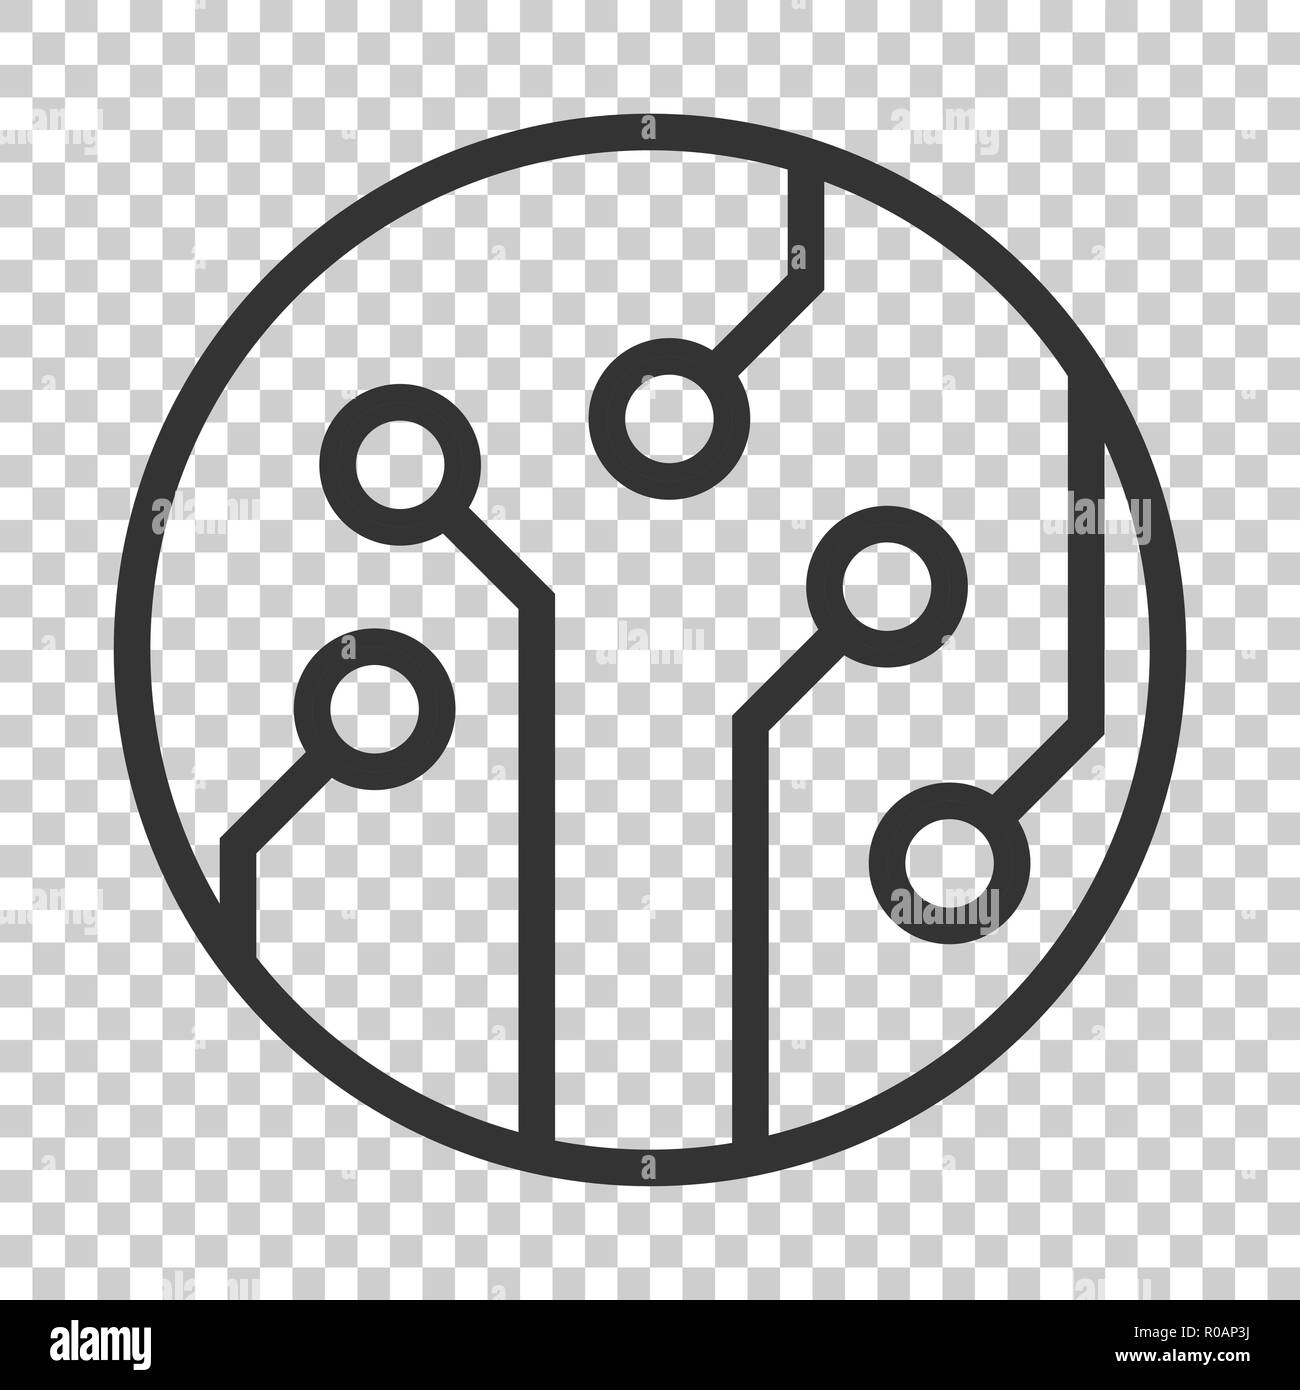 Printed Circuit Board Black And White Stock Photos Images Alamy Design Square Wall Clock Icon In Flat Style Technology Microchip Vector Illustration On Isolated Background Processor